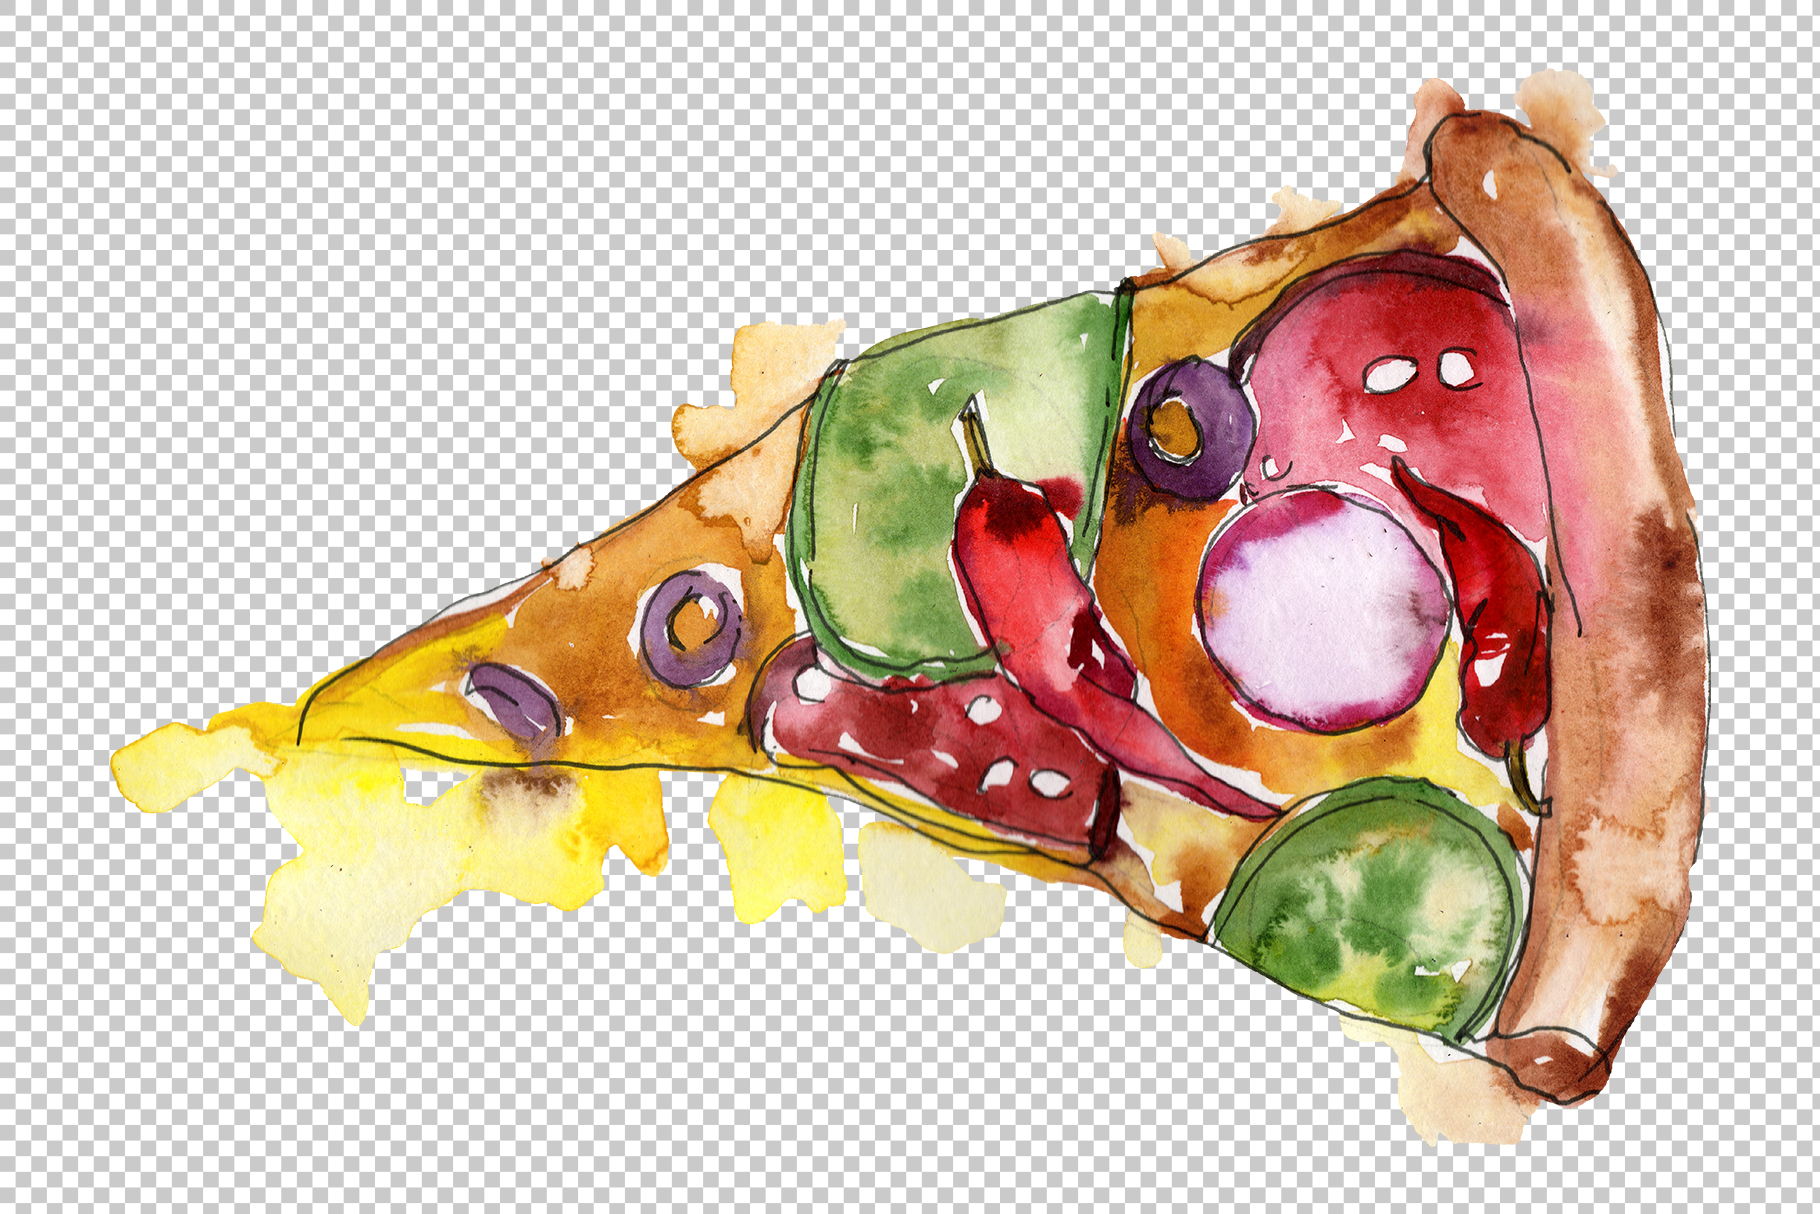 Pizza Margherita watercolor png example image 3